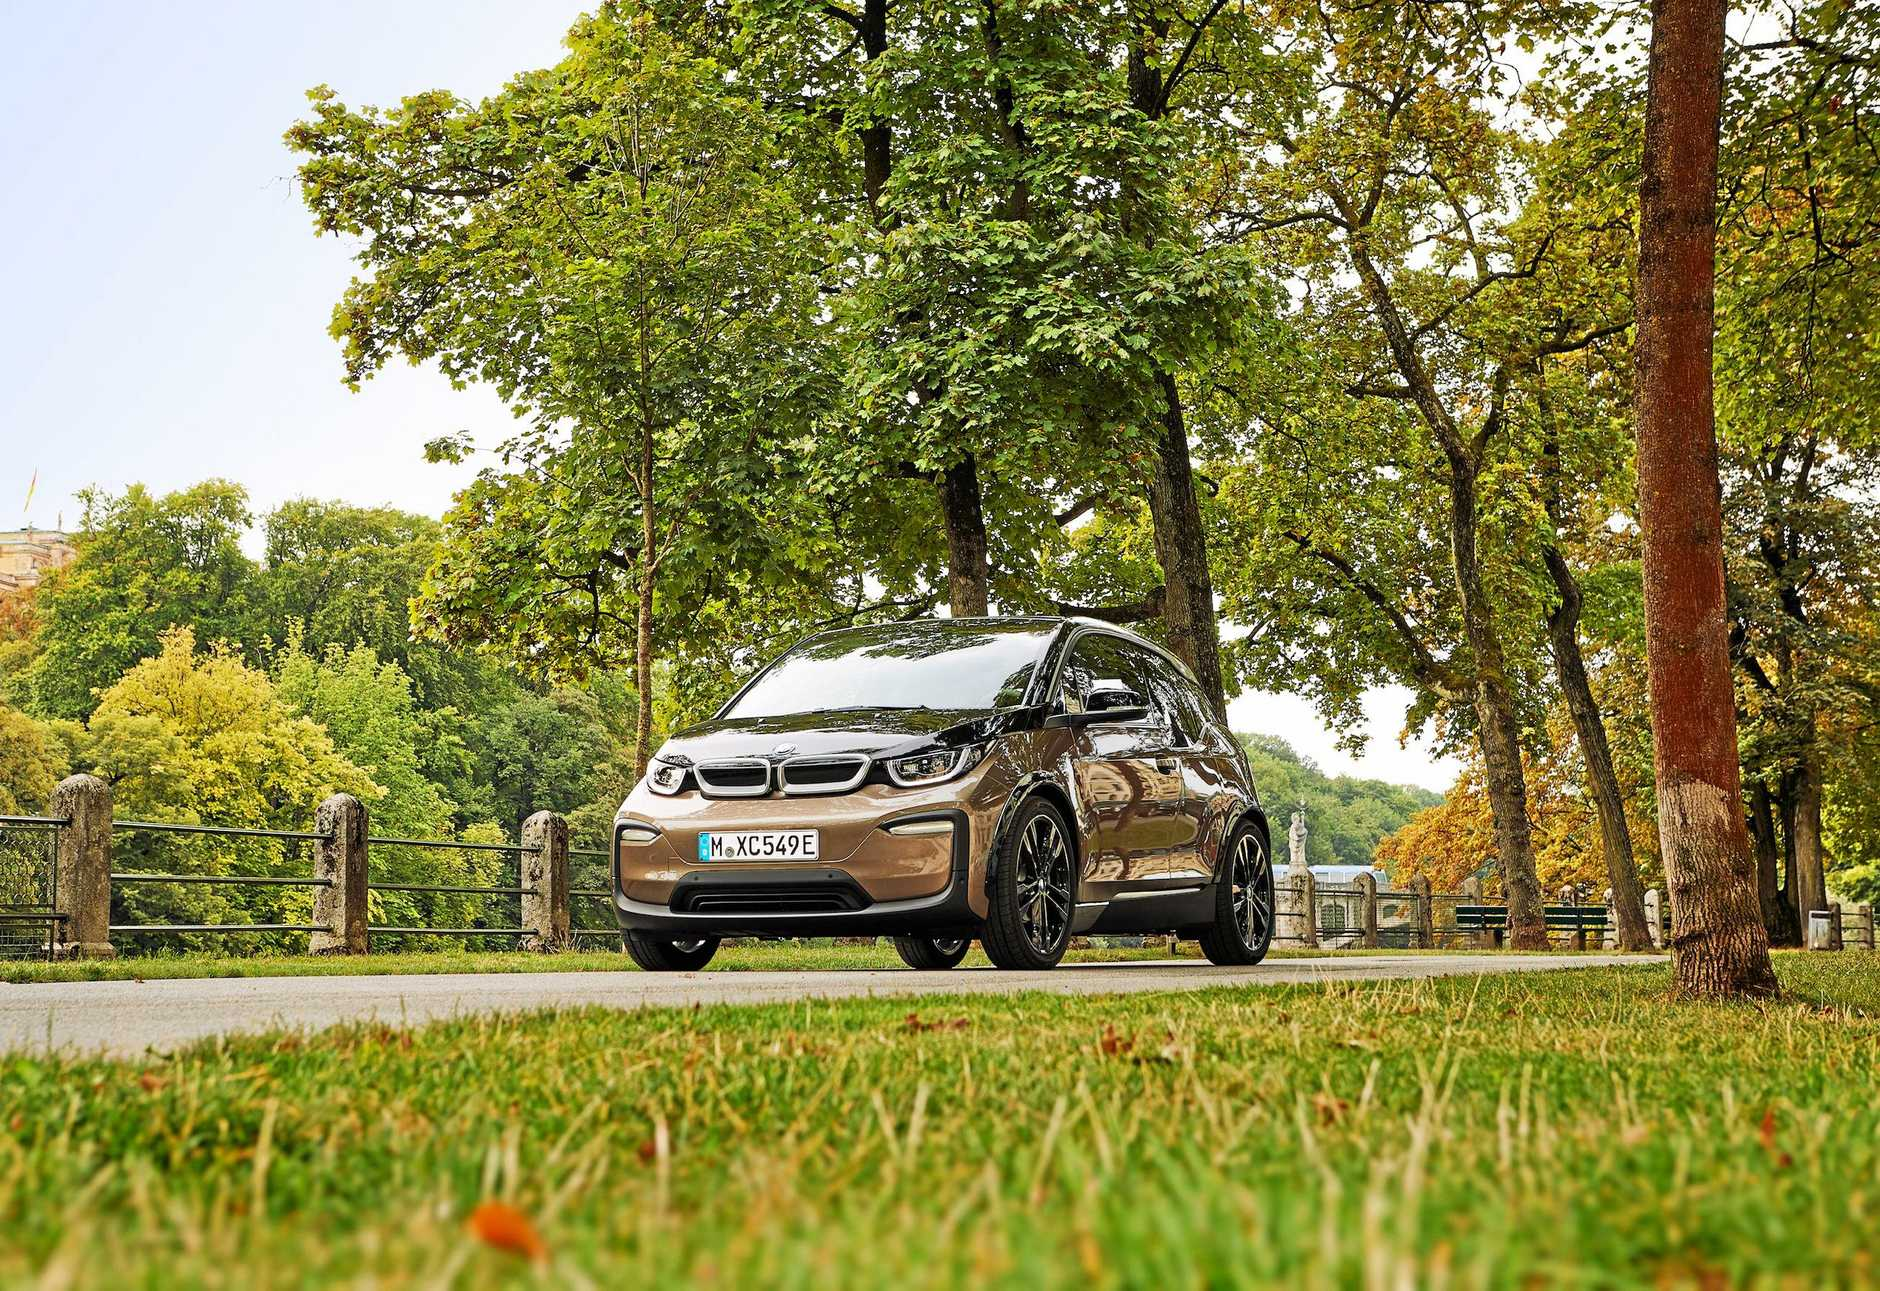 The BMW i3 now has a range of more than 250km.